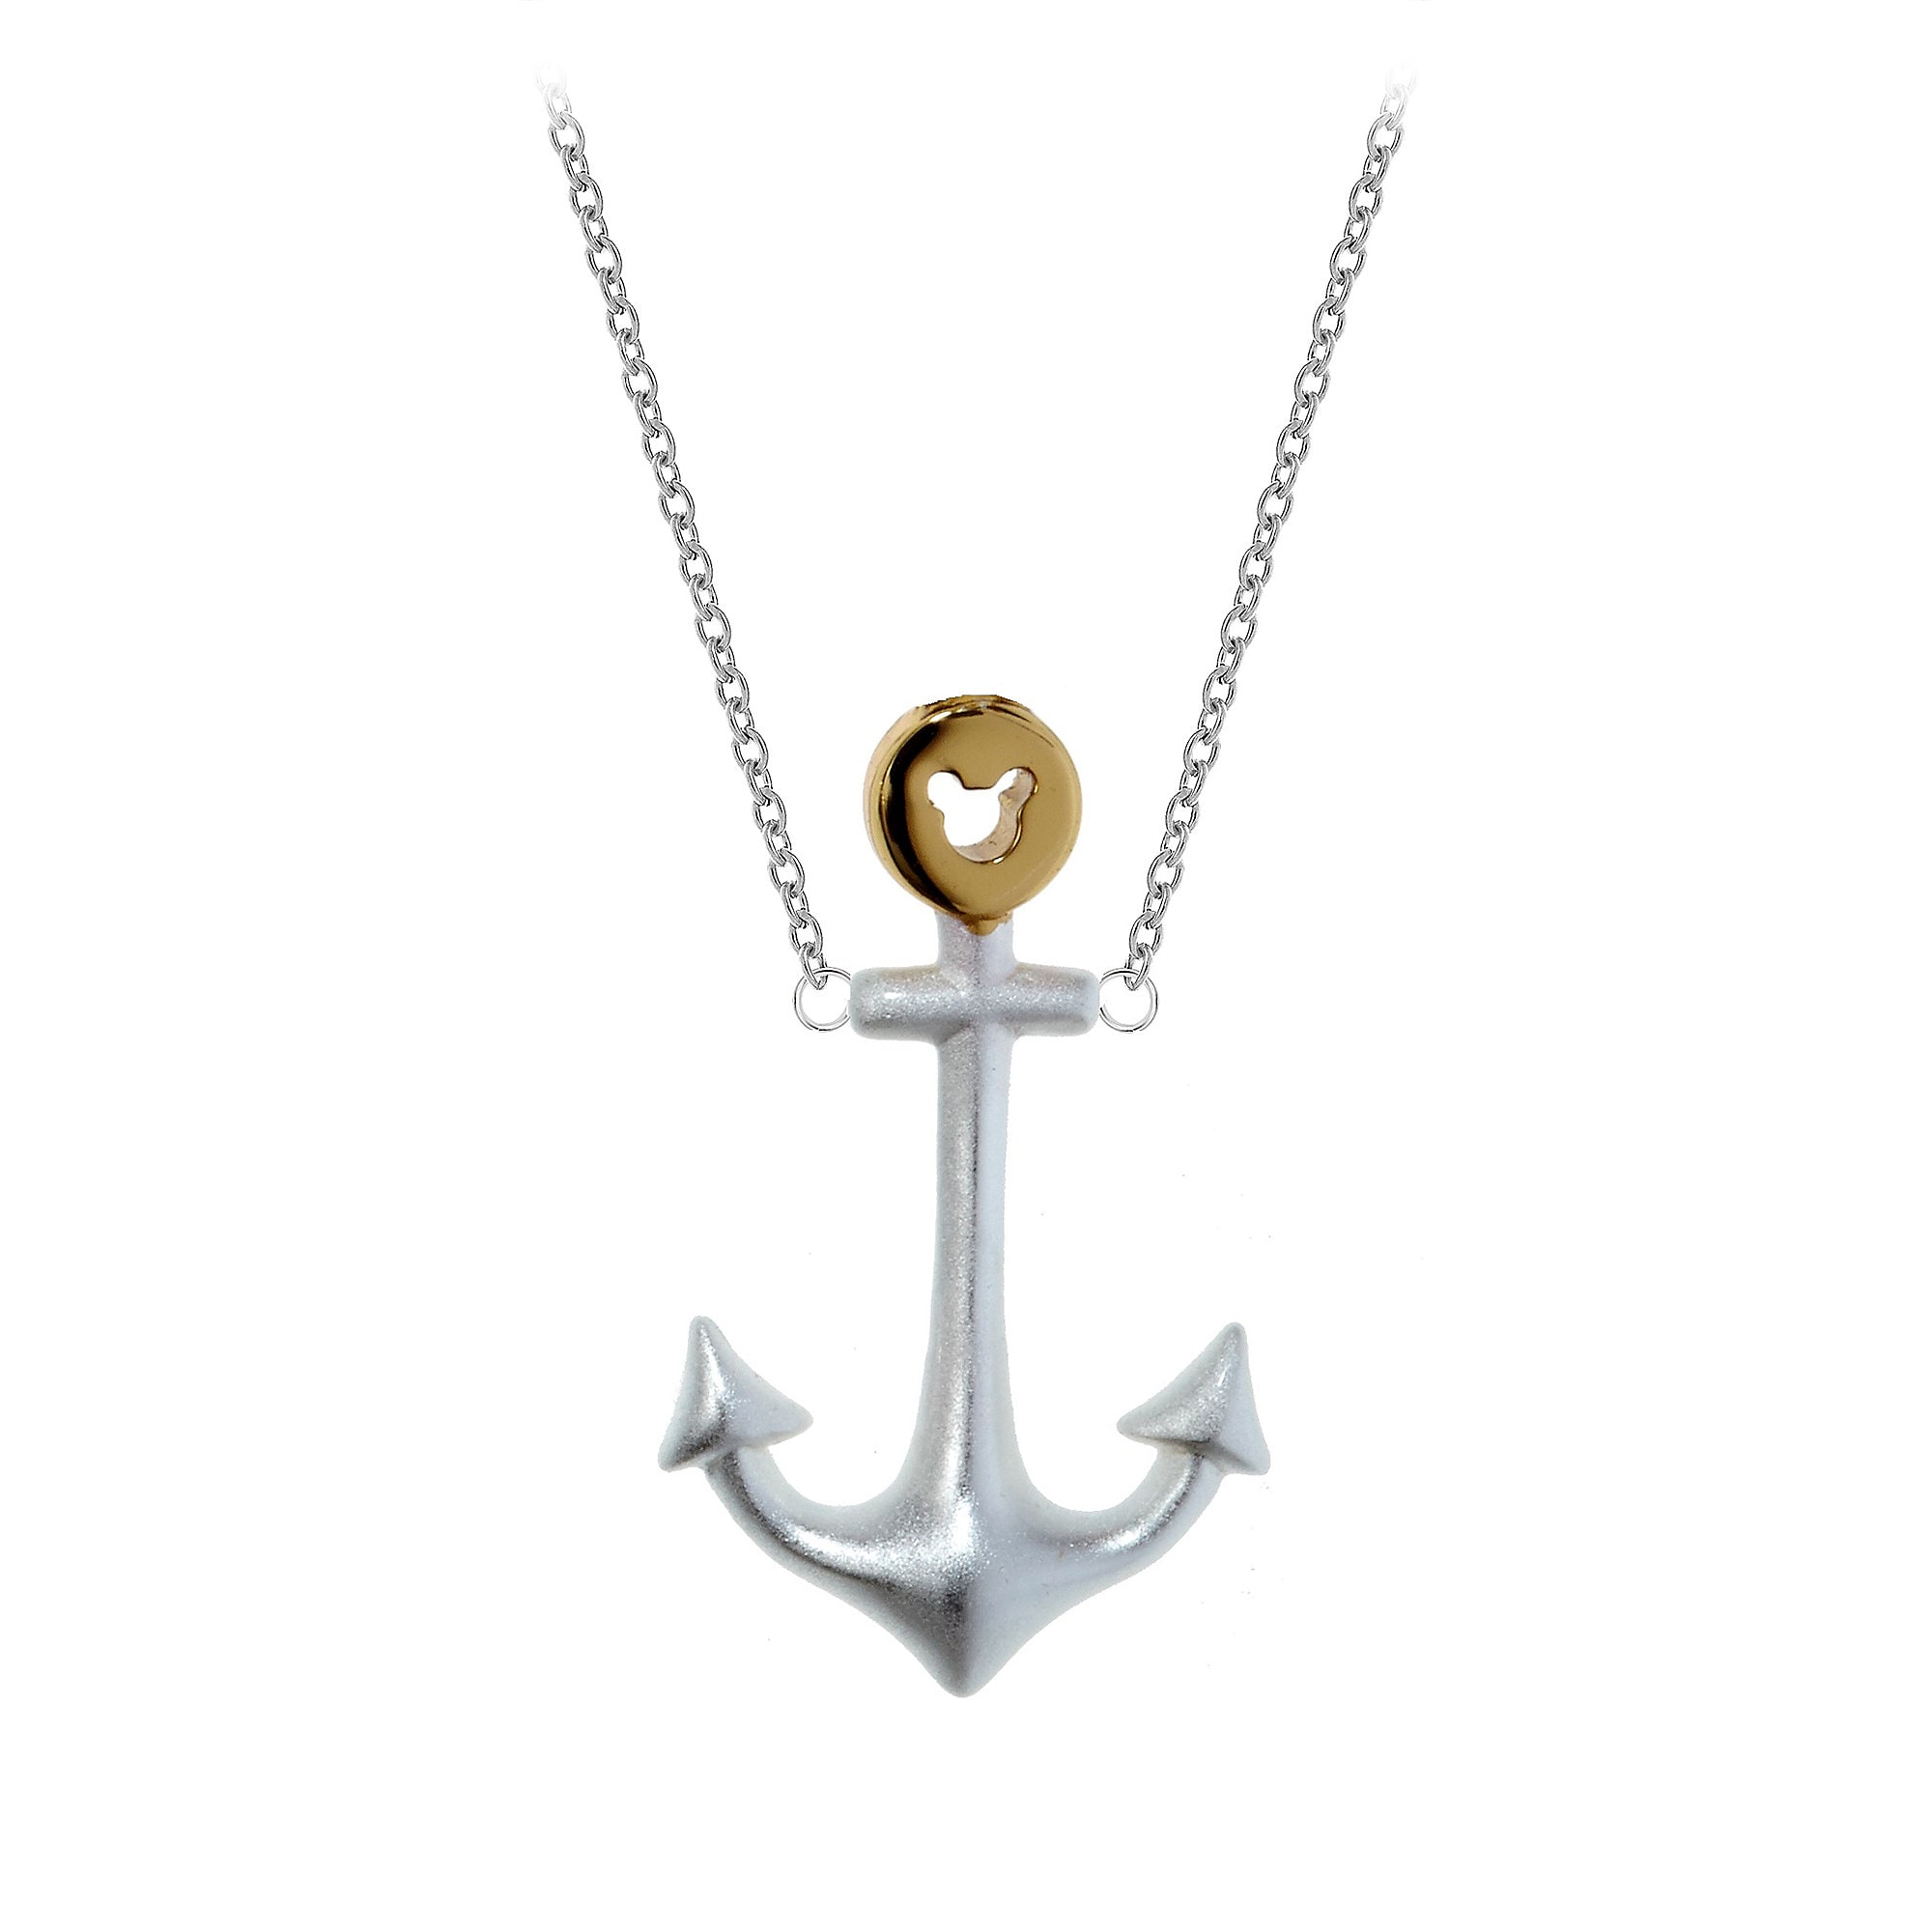 product daniella maxi maxianchornecklace anchor necklace draper statement shop